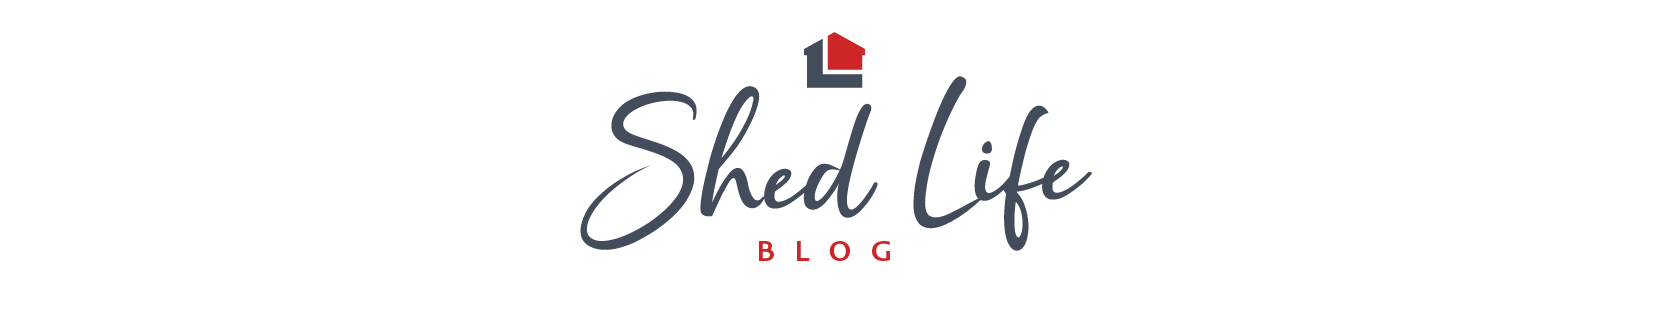 ShedLife Blog assets-07